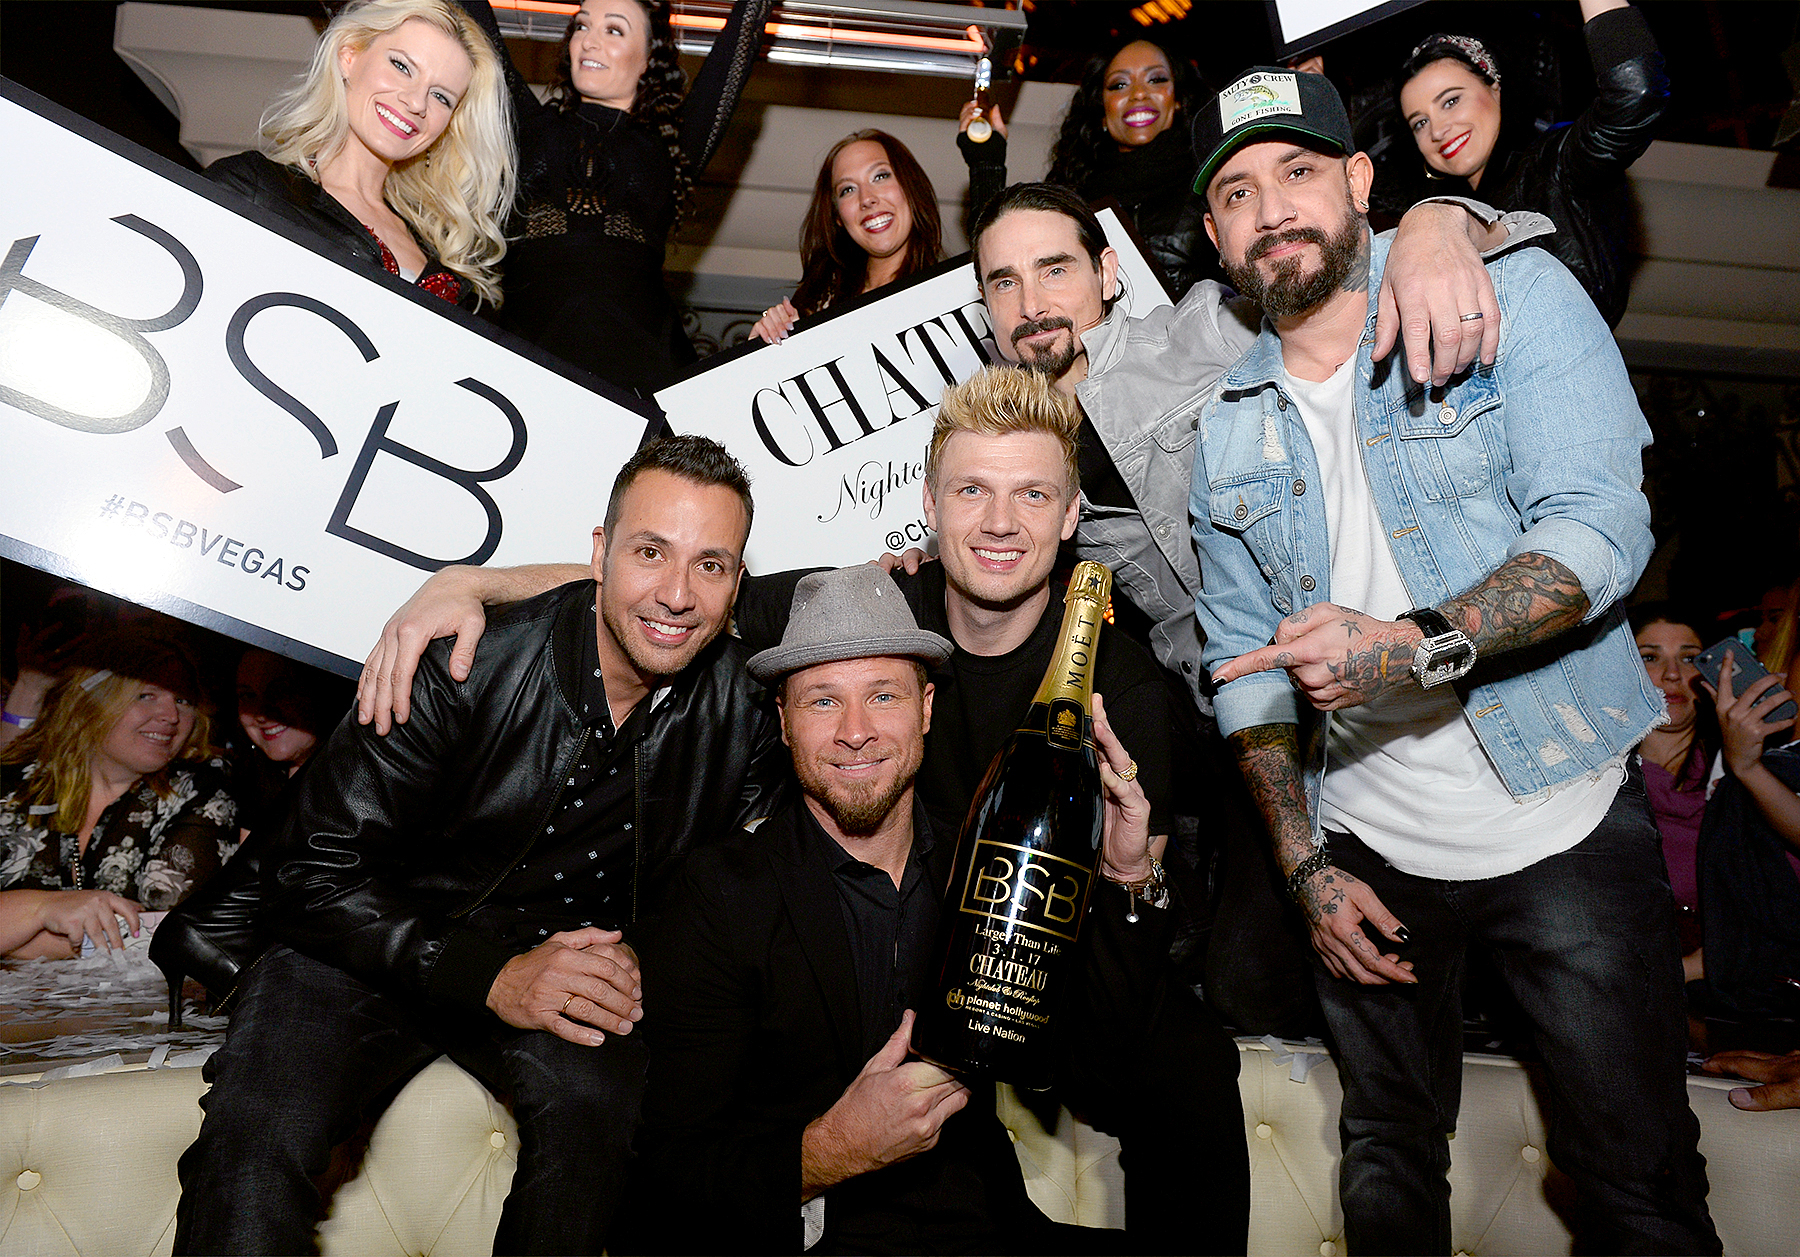 What It\'s Like to Party With the Backstreet Boys